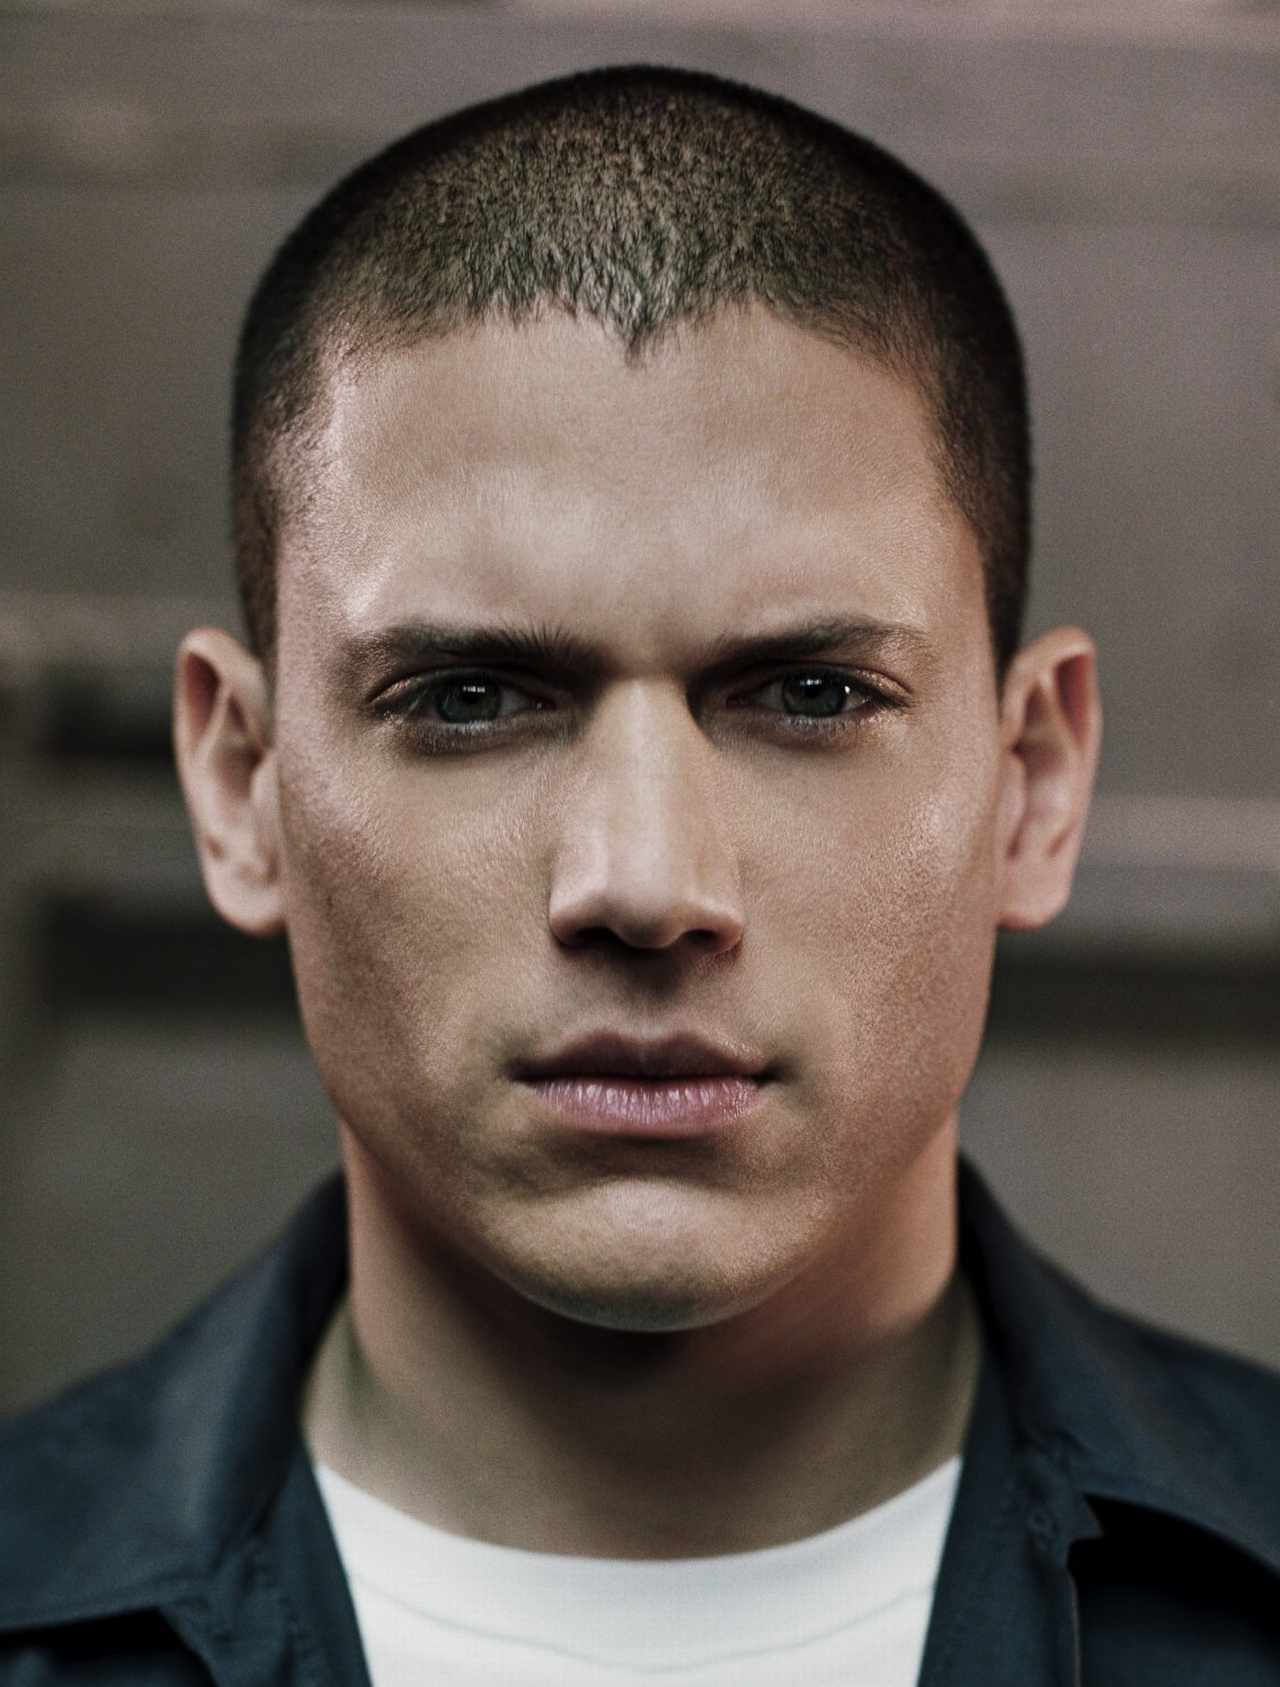 wentworth miller heightwentworth miller 2016, wentworth miller twitter, wentworth miller vk, wentworth miller фильмы, wentworth miller инстаграм, wentworth miller films, wentworth miller gif, wentworth miller wikipedia, wentworth miller family, wentworth miller interview, wentworth miller flash, wentworth miller wife, wentworth miller resident evil, wentworth miller personal life, wentworth miller imdb, wentworth miller height, wentworth miller photo, wentworth miller wiki, wentworth miller личная жизнь, wentworth miller legends of tomorrow